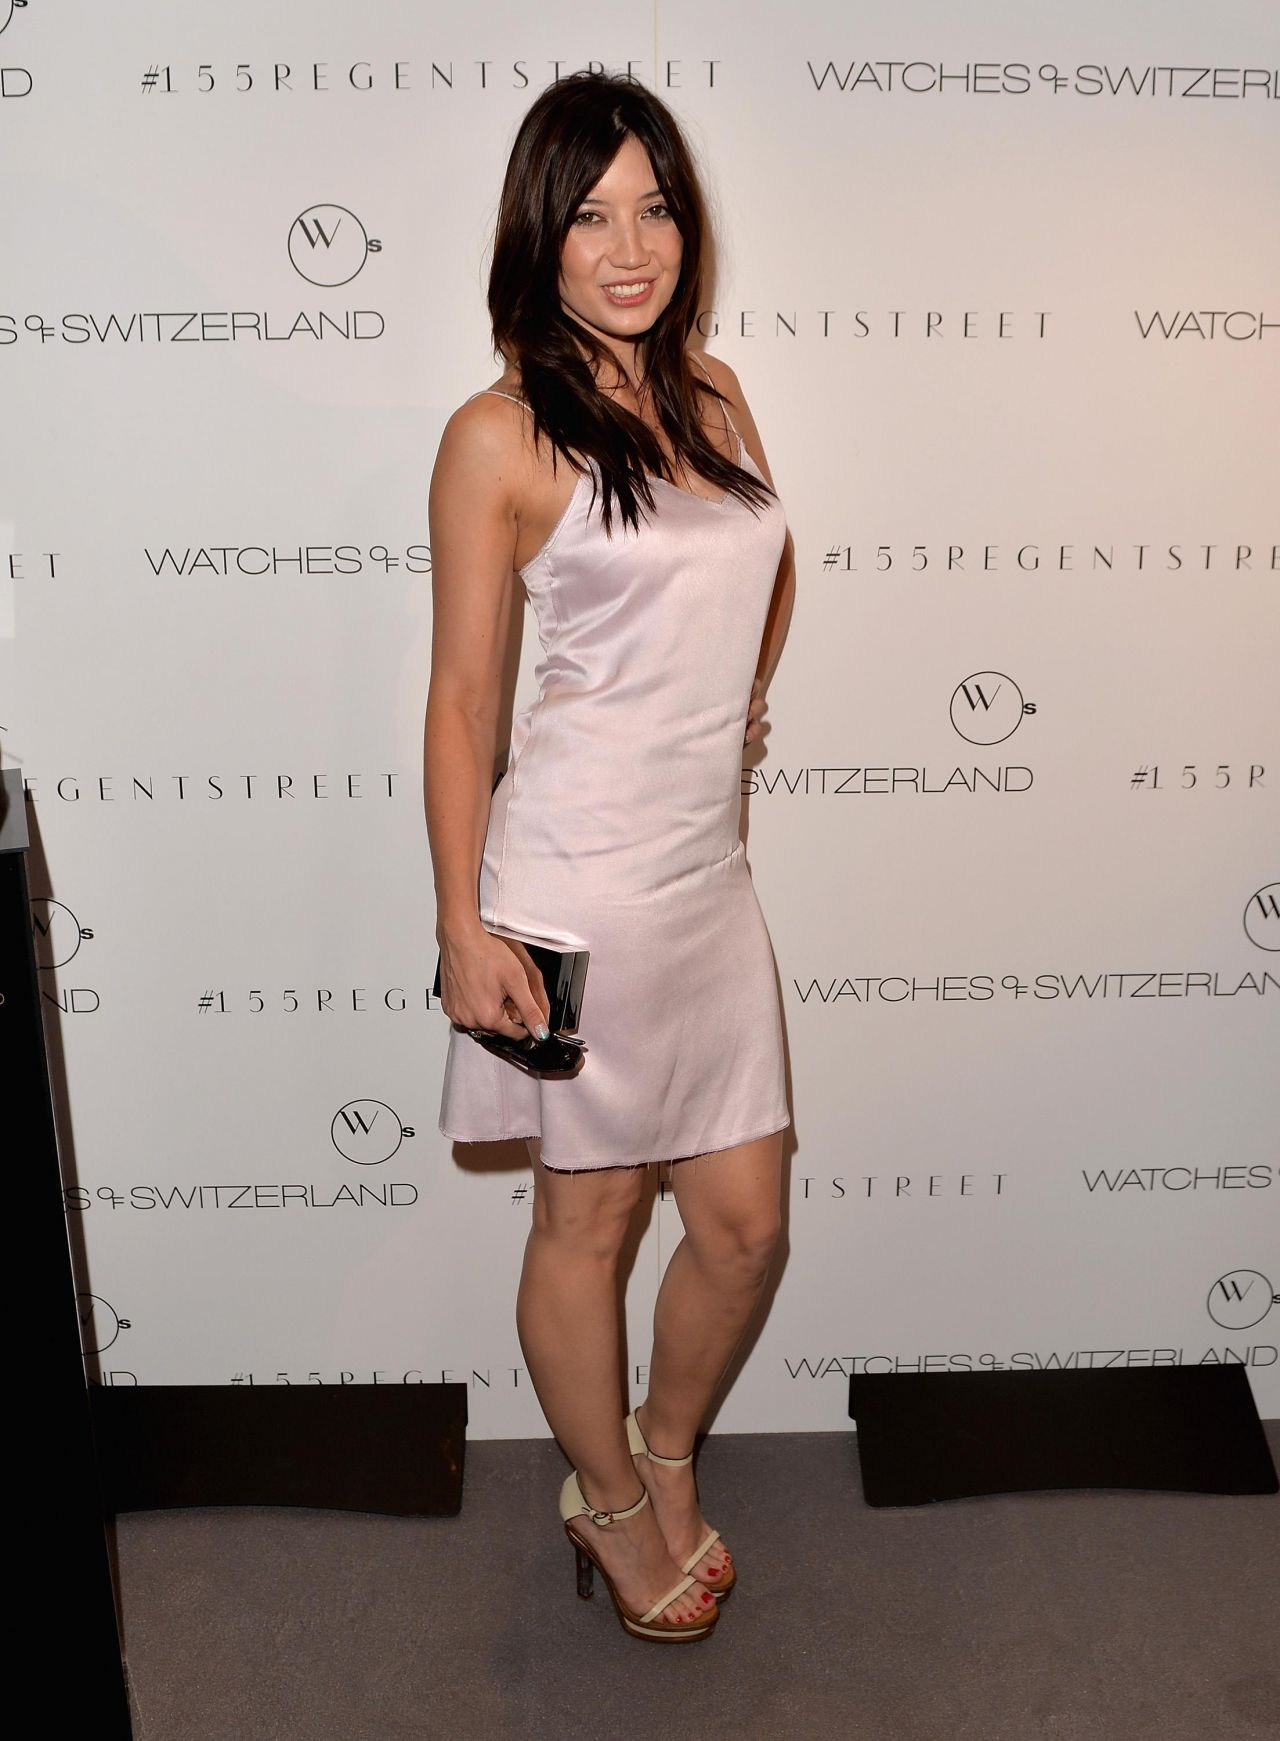 Daisy Lowe Hot In Dress Watches Of Switzerland Flagship